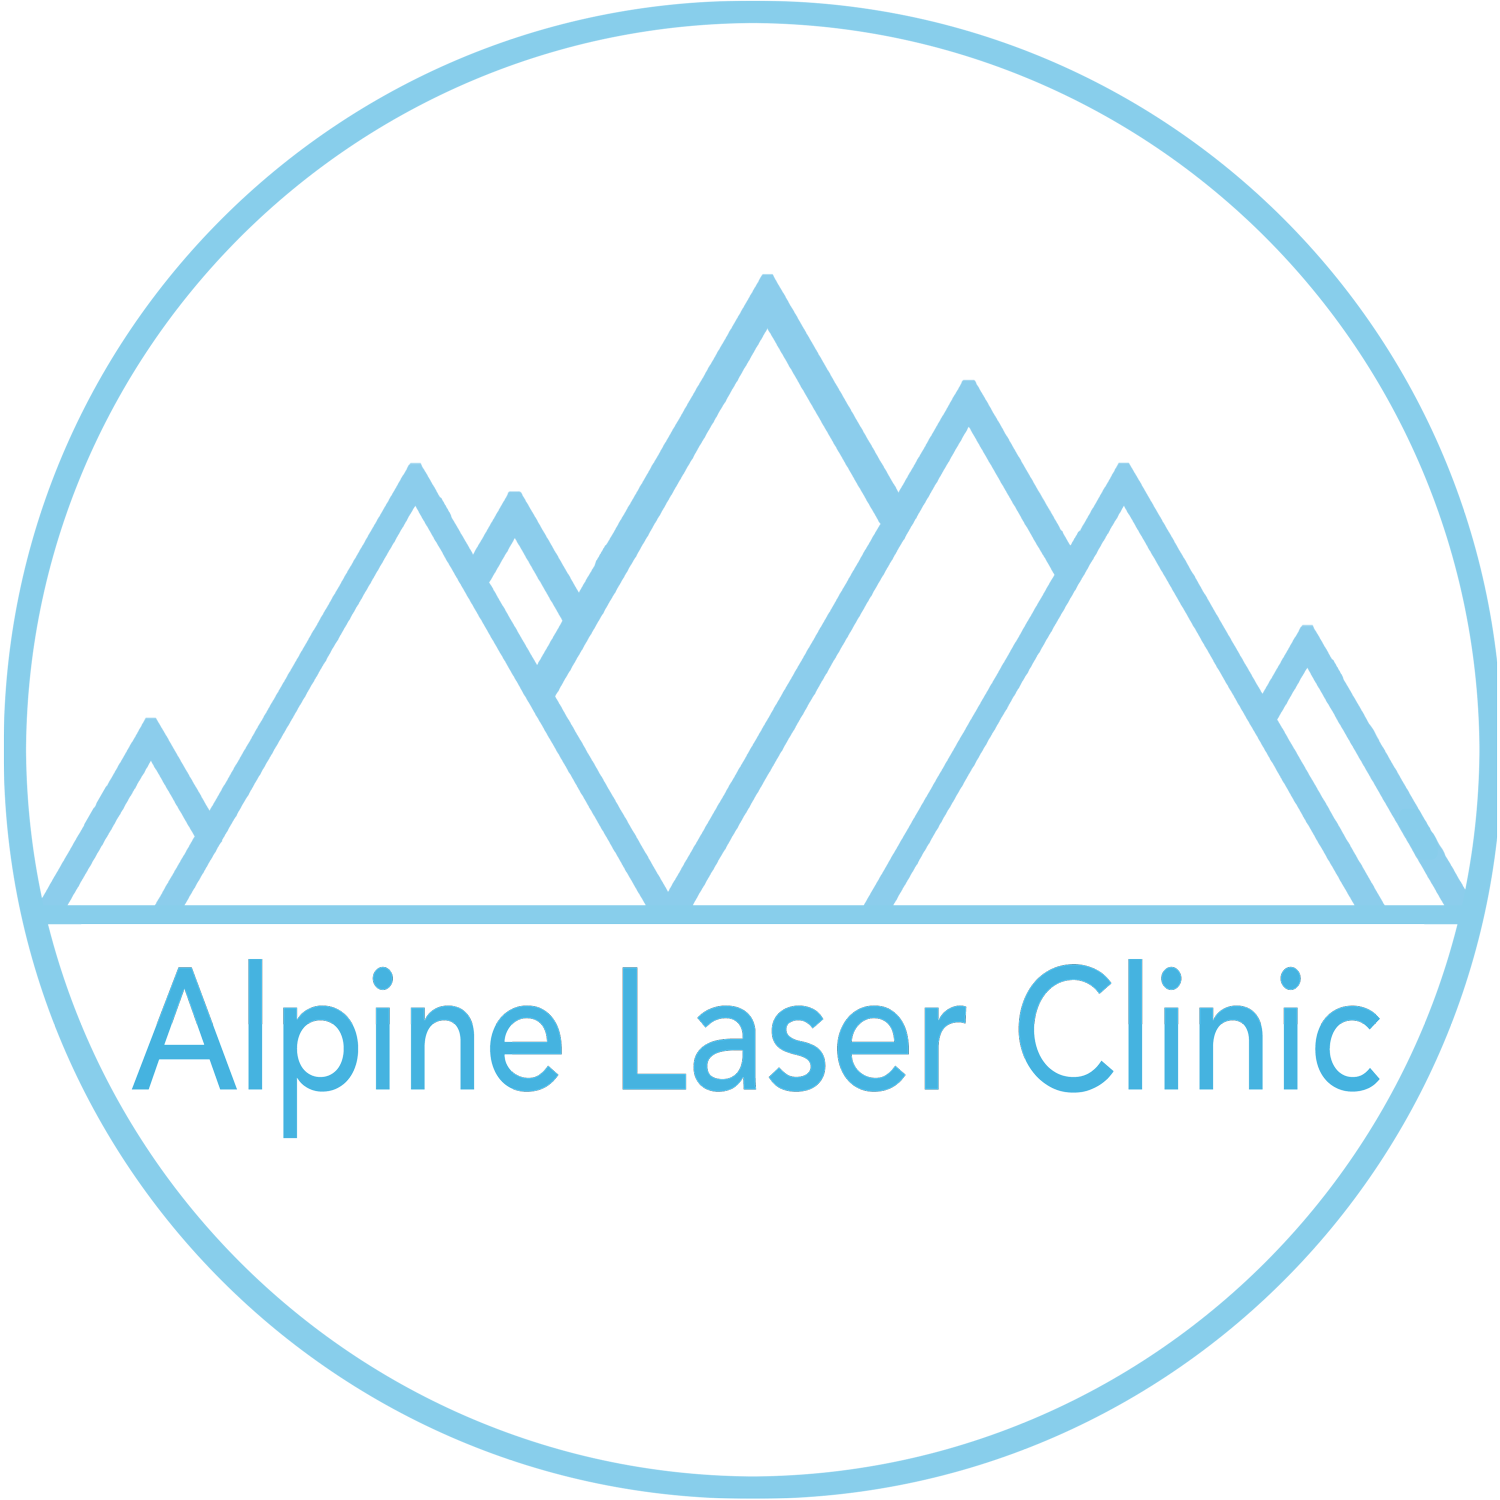 Alpine Laser Clinic